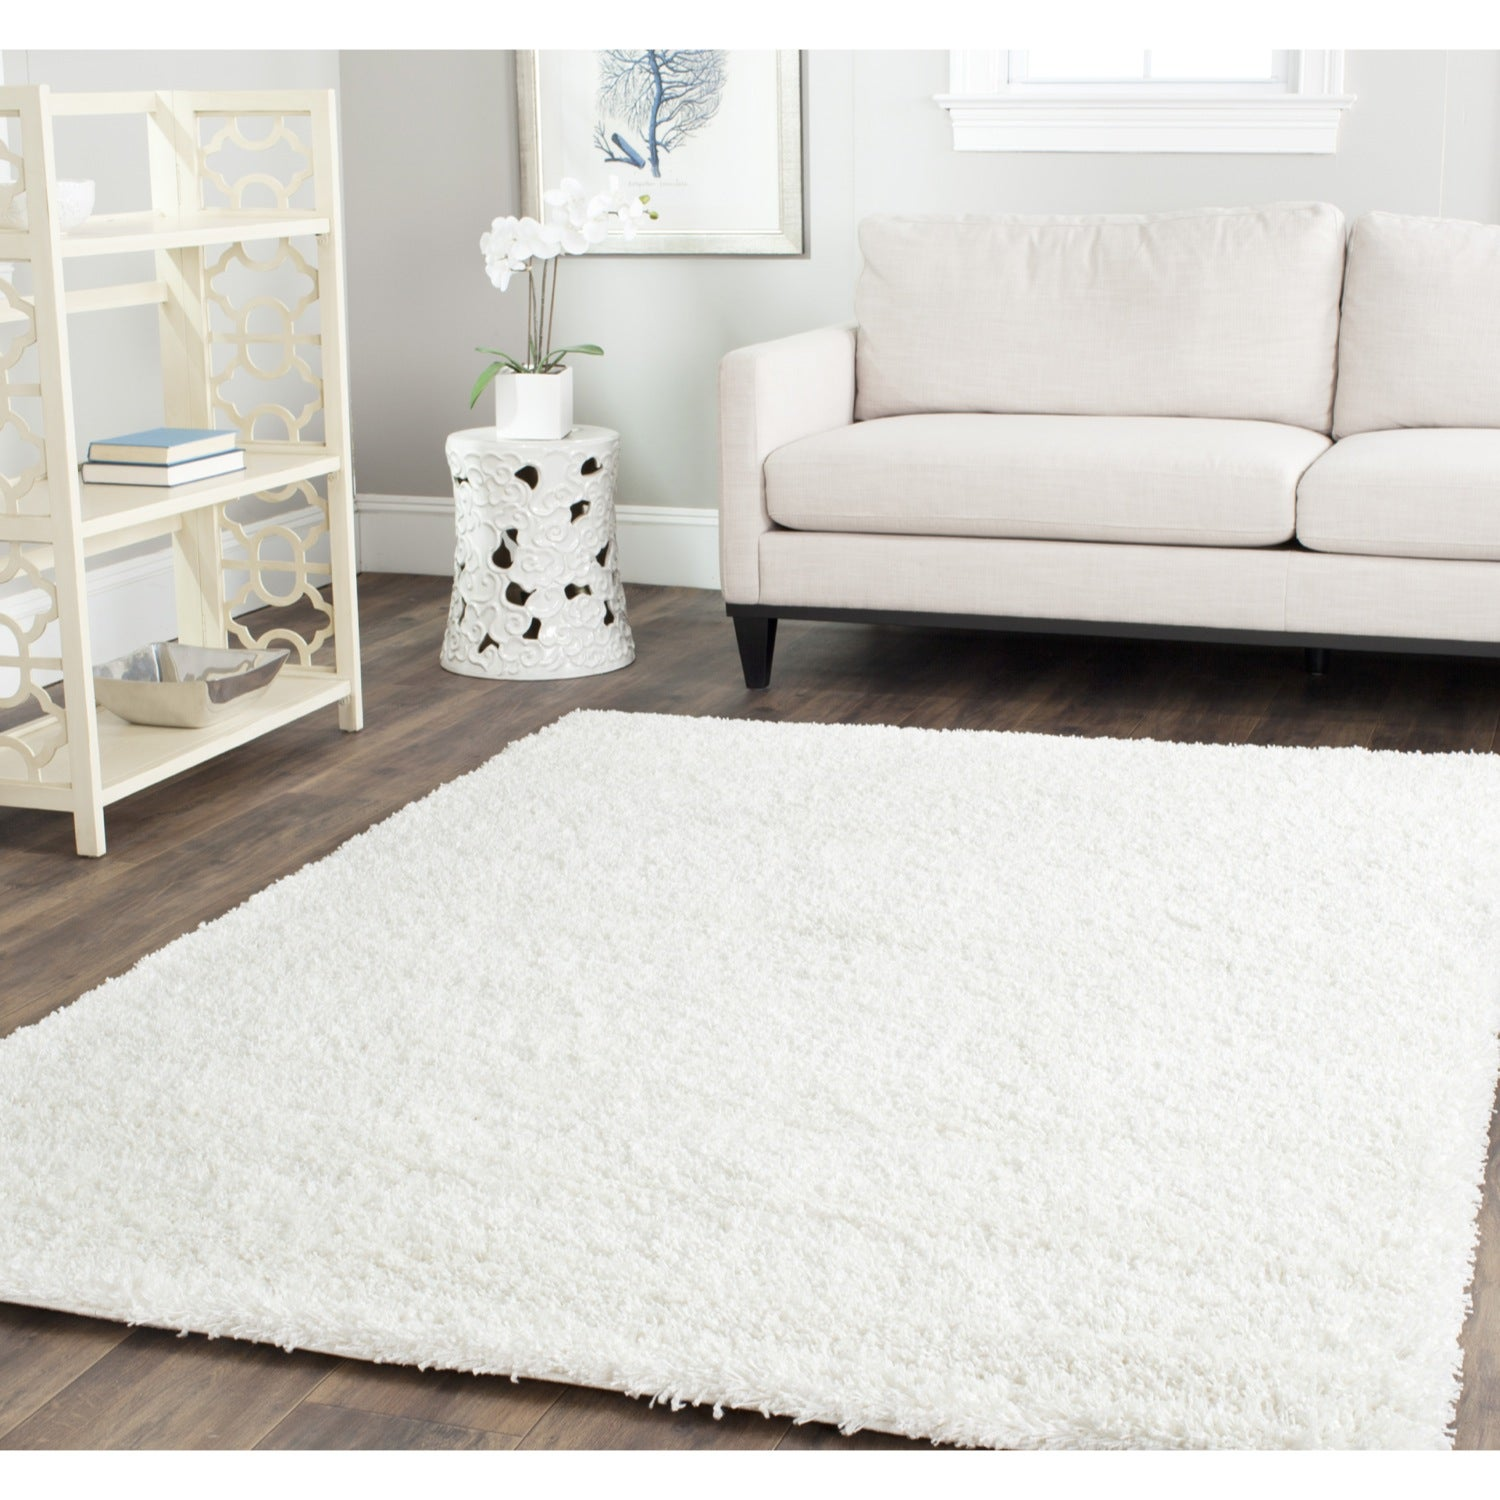 Safavieh cozy solid white shag rug overstock shopping for 10x14 bedroom